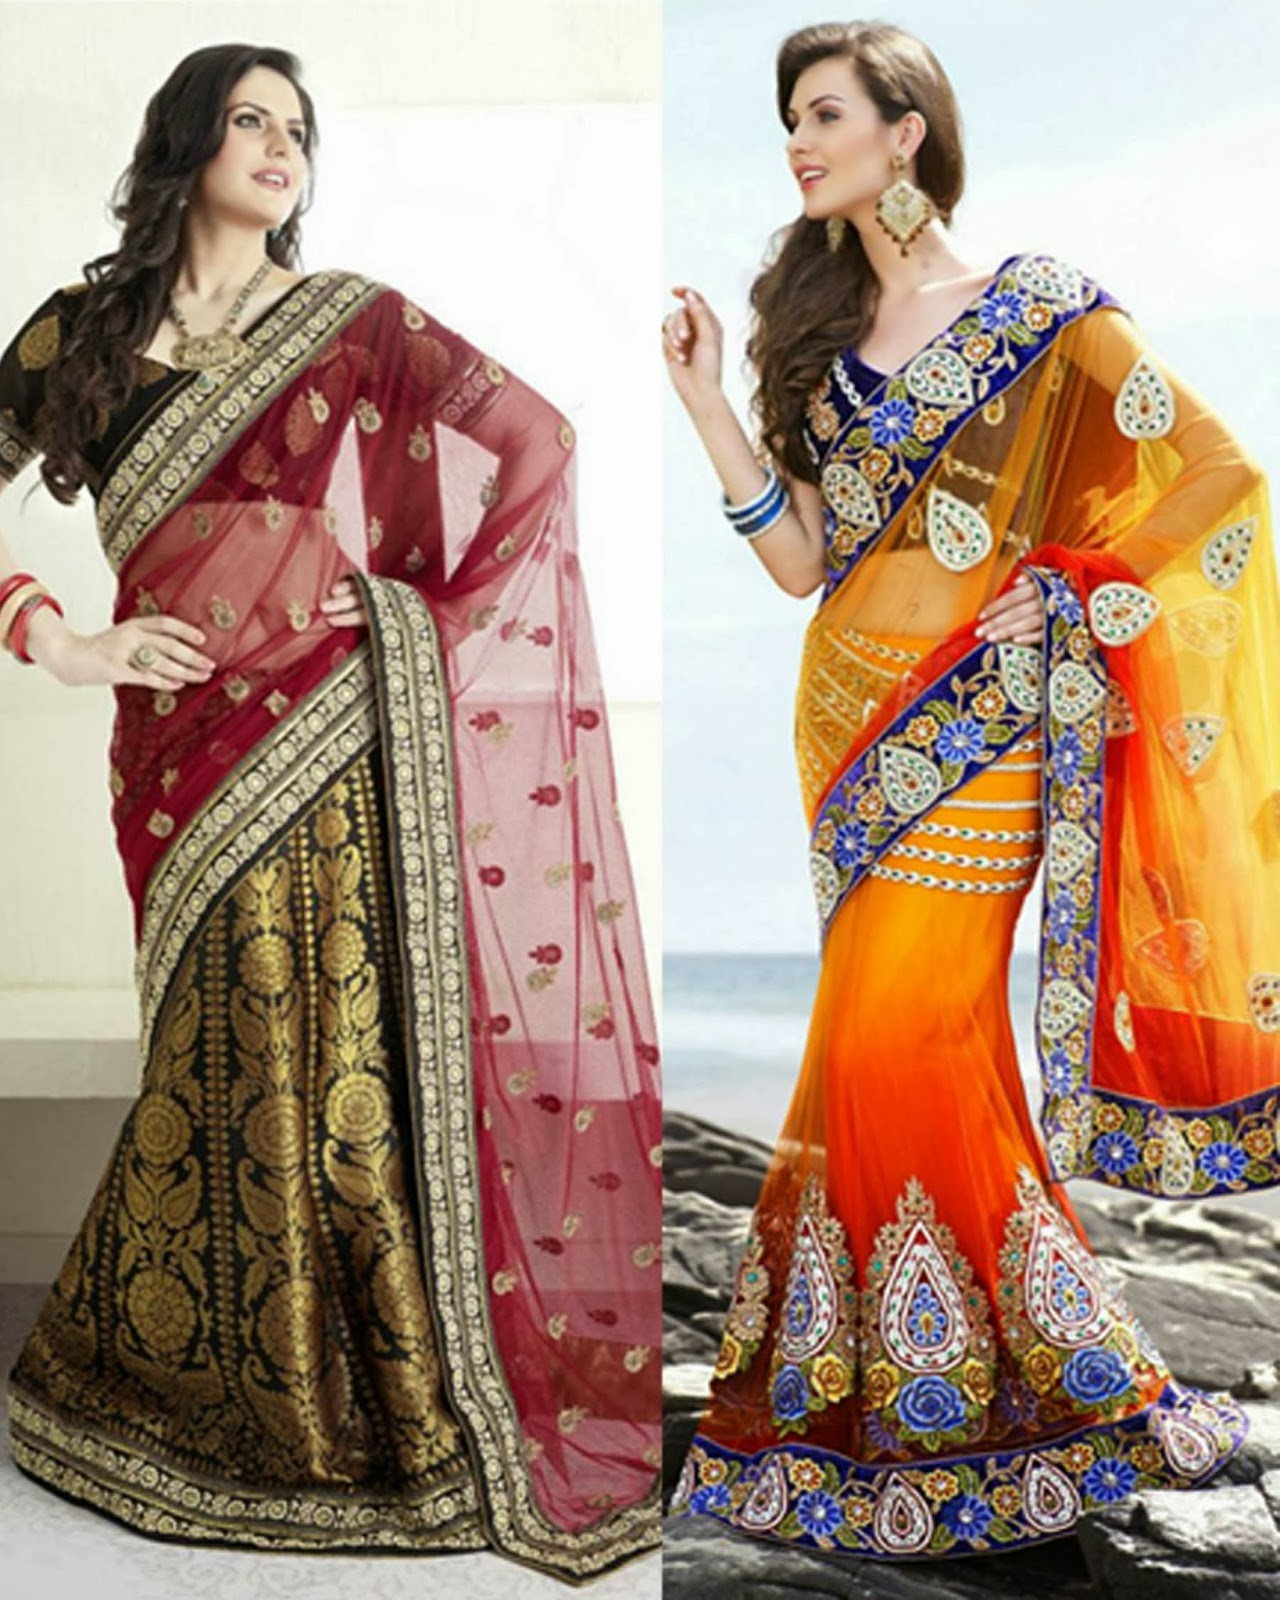 pakistani fashion indian fashion international fashion gossips beauty tips utsav gorgeous